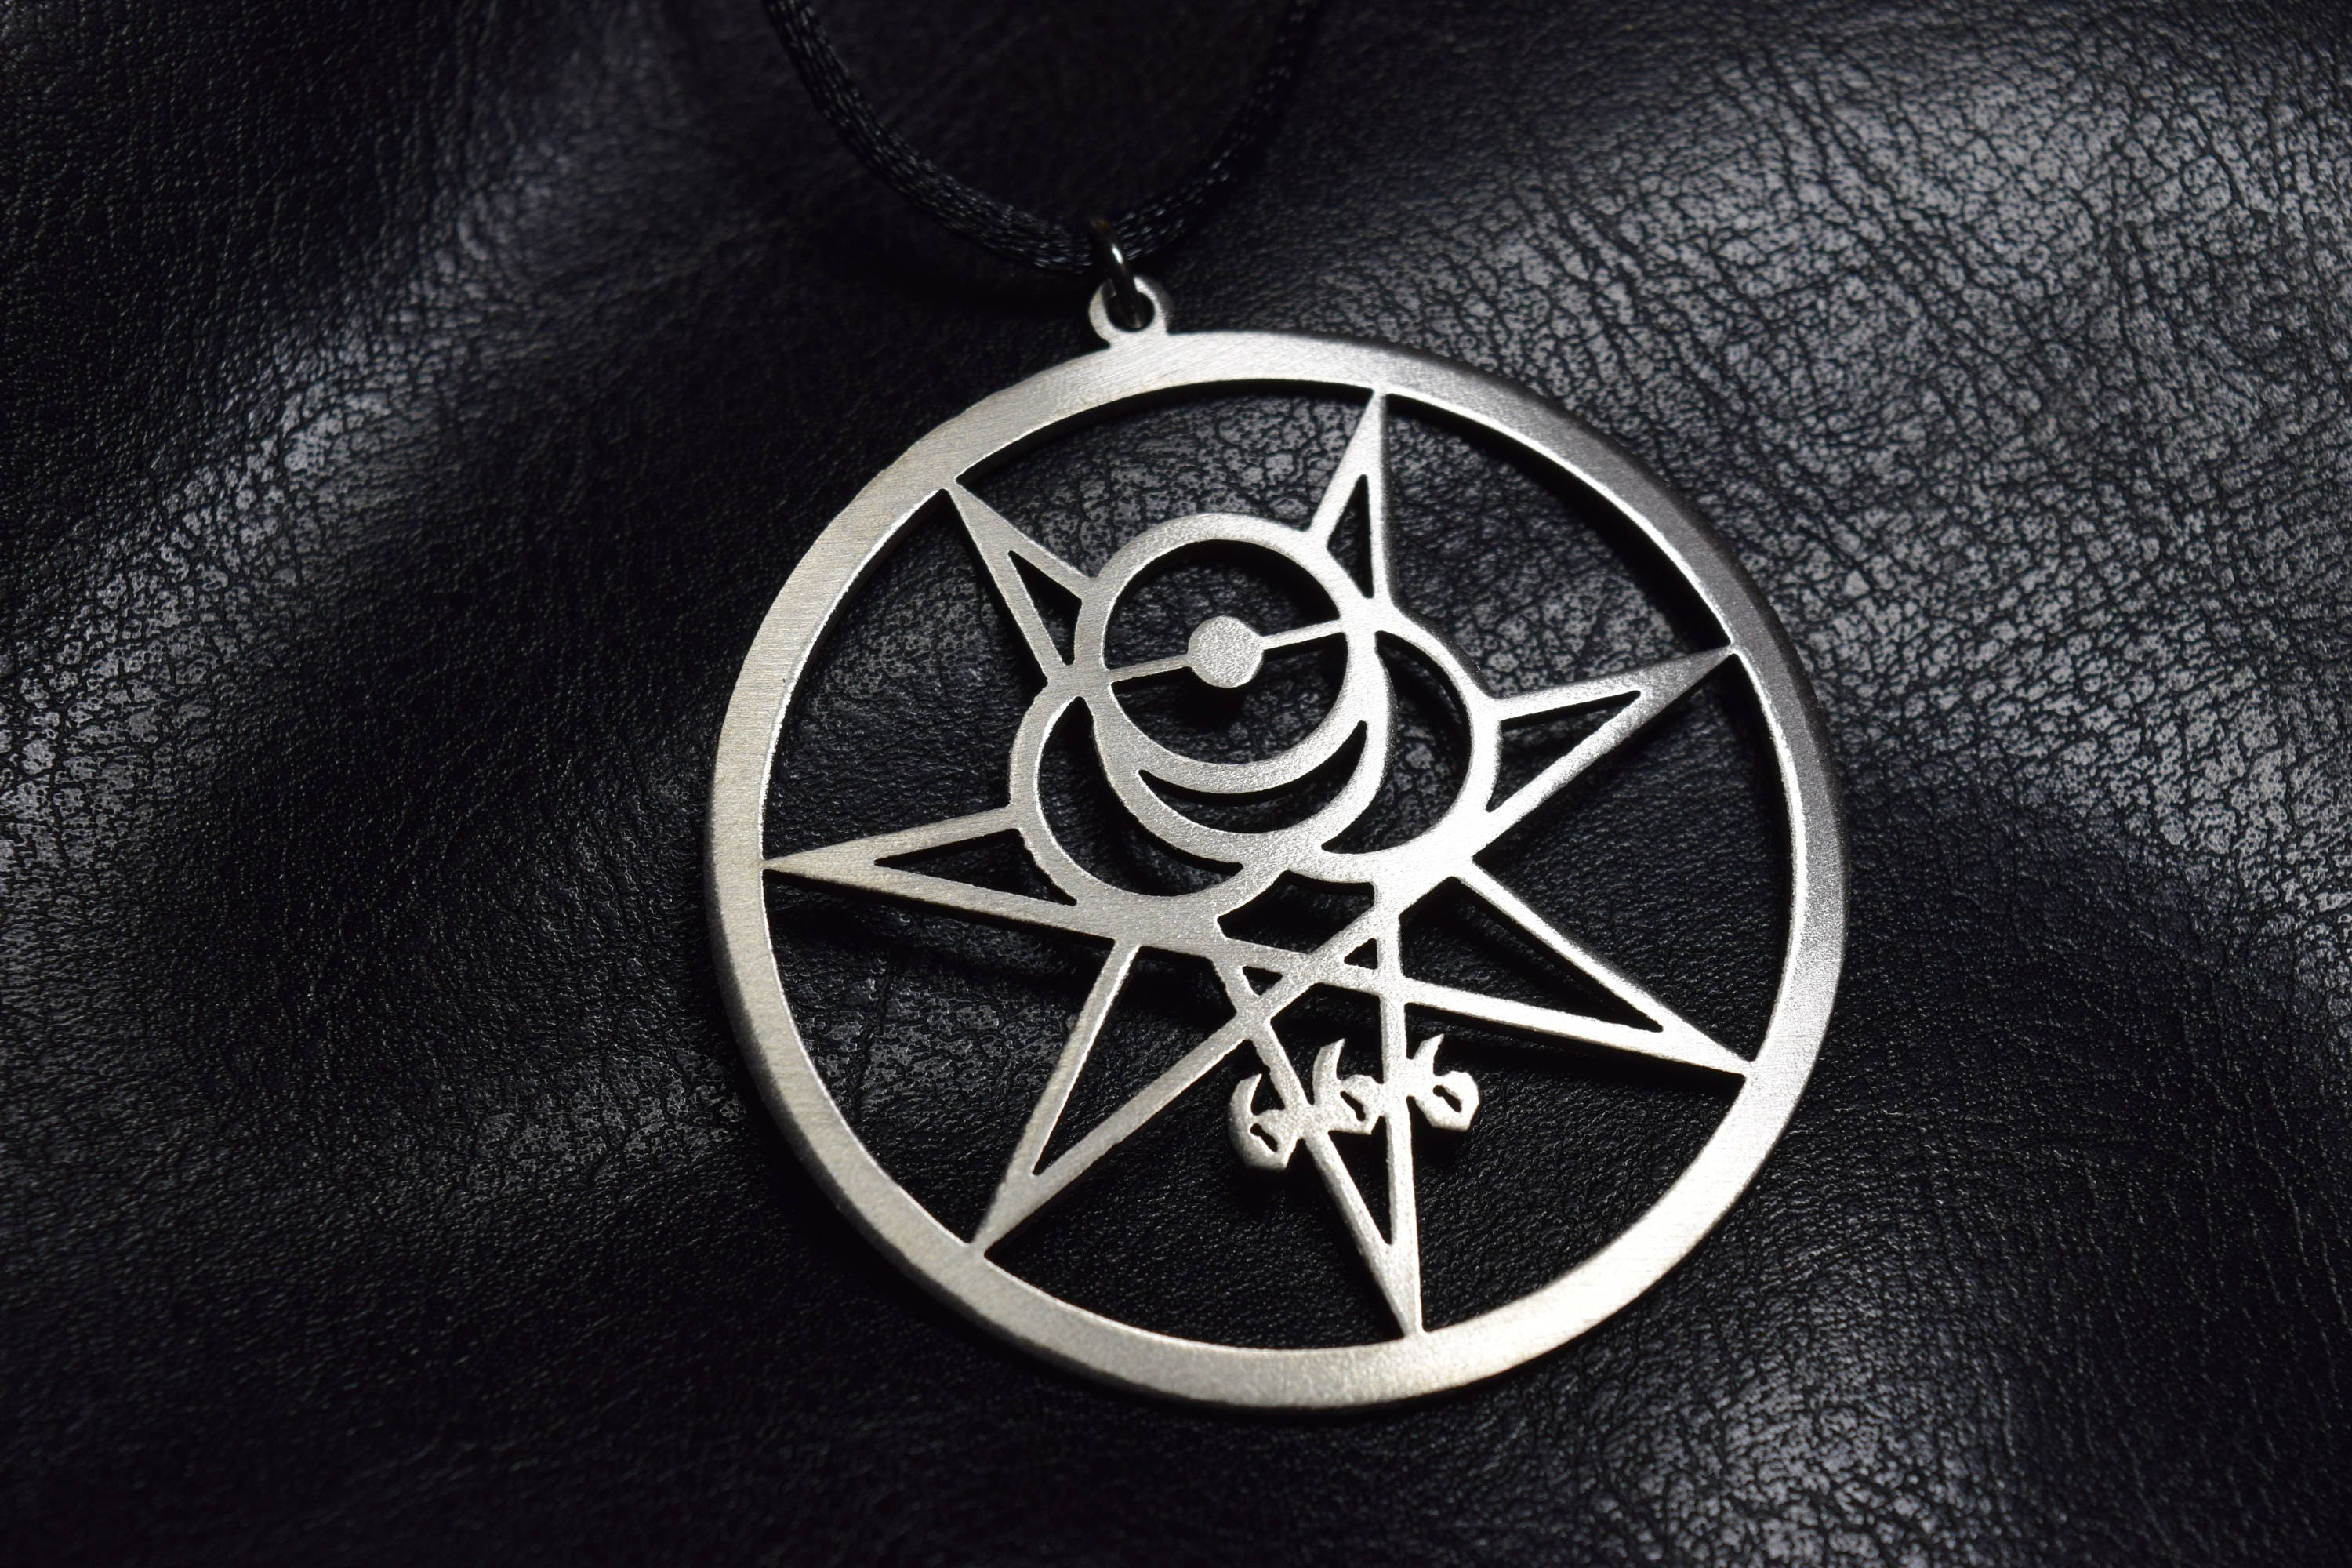 Crowley Secret Seal Thelema Sigil Illuminati Occult Symbol Etsy